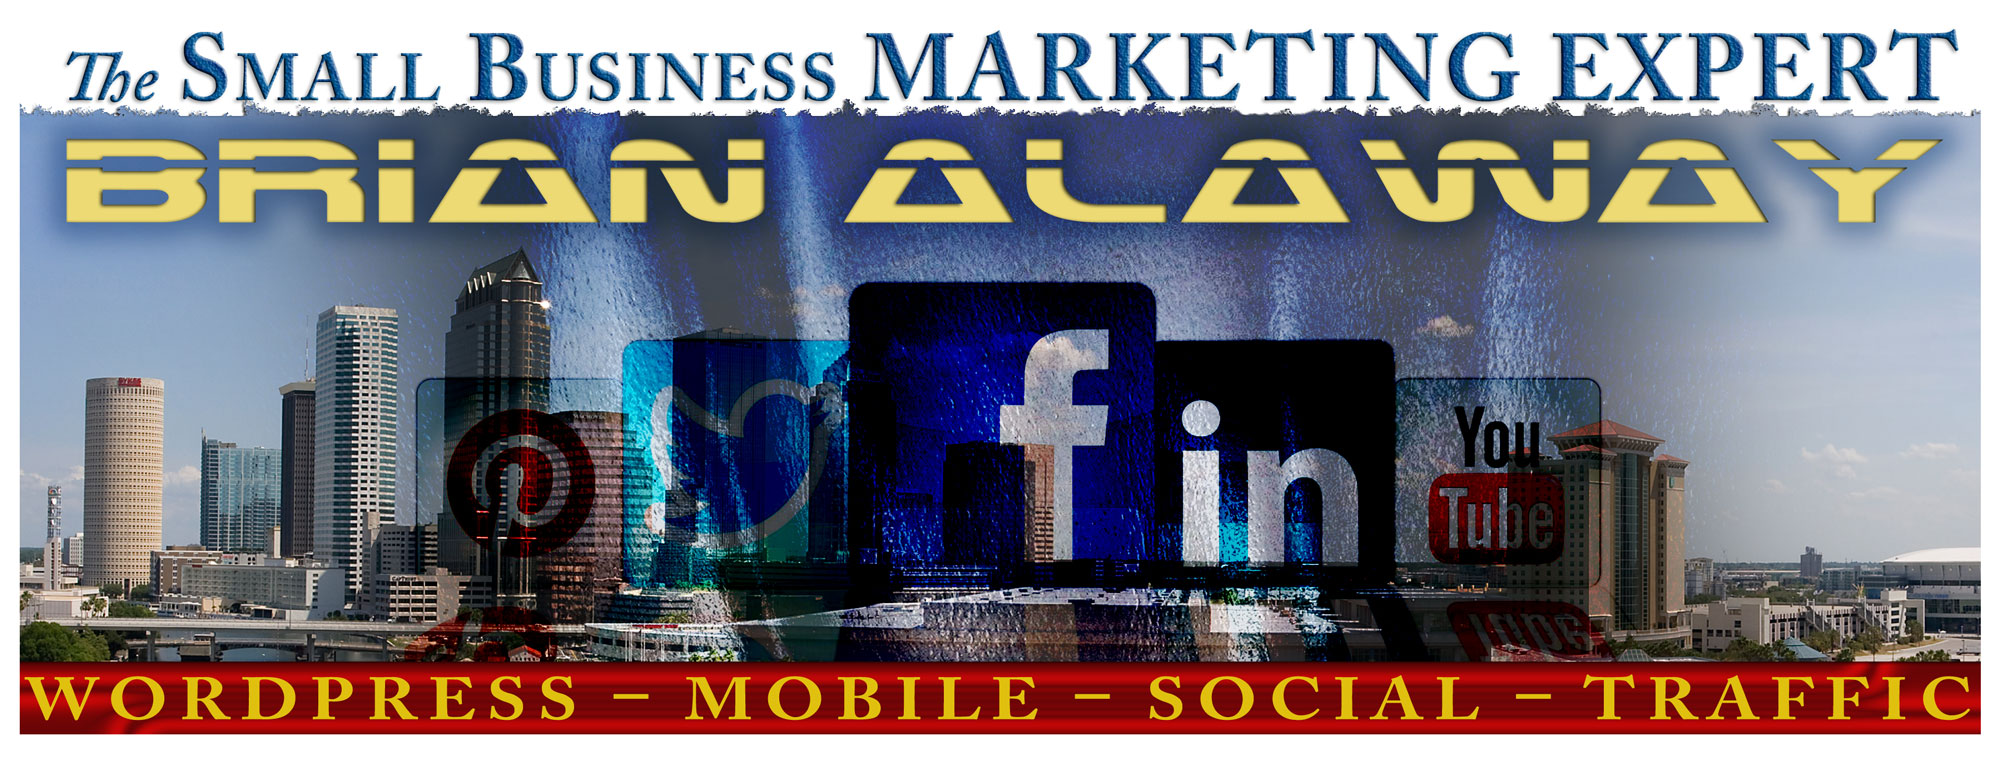 Brian Alaway - Small Business Marketing Expert